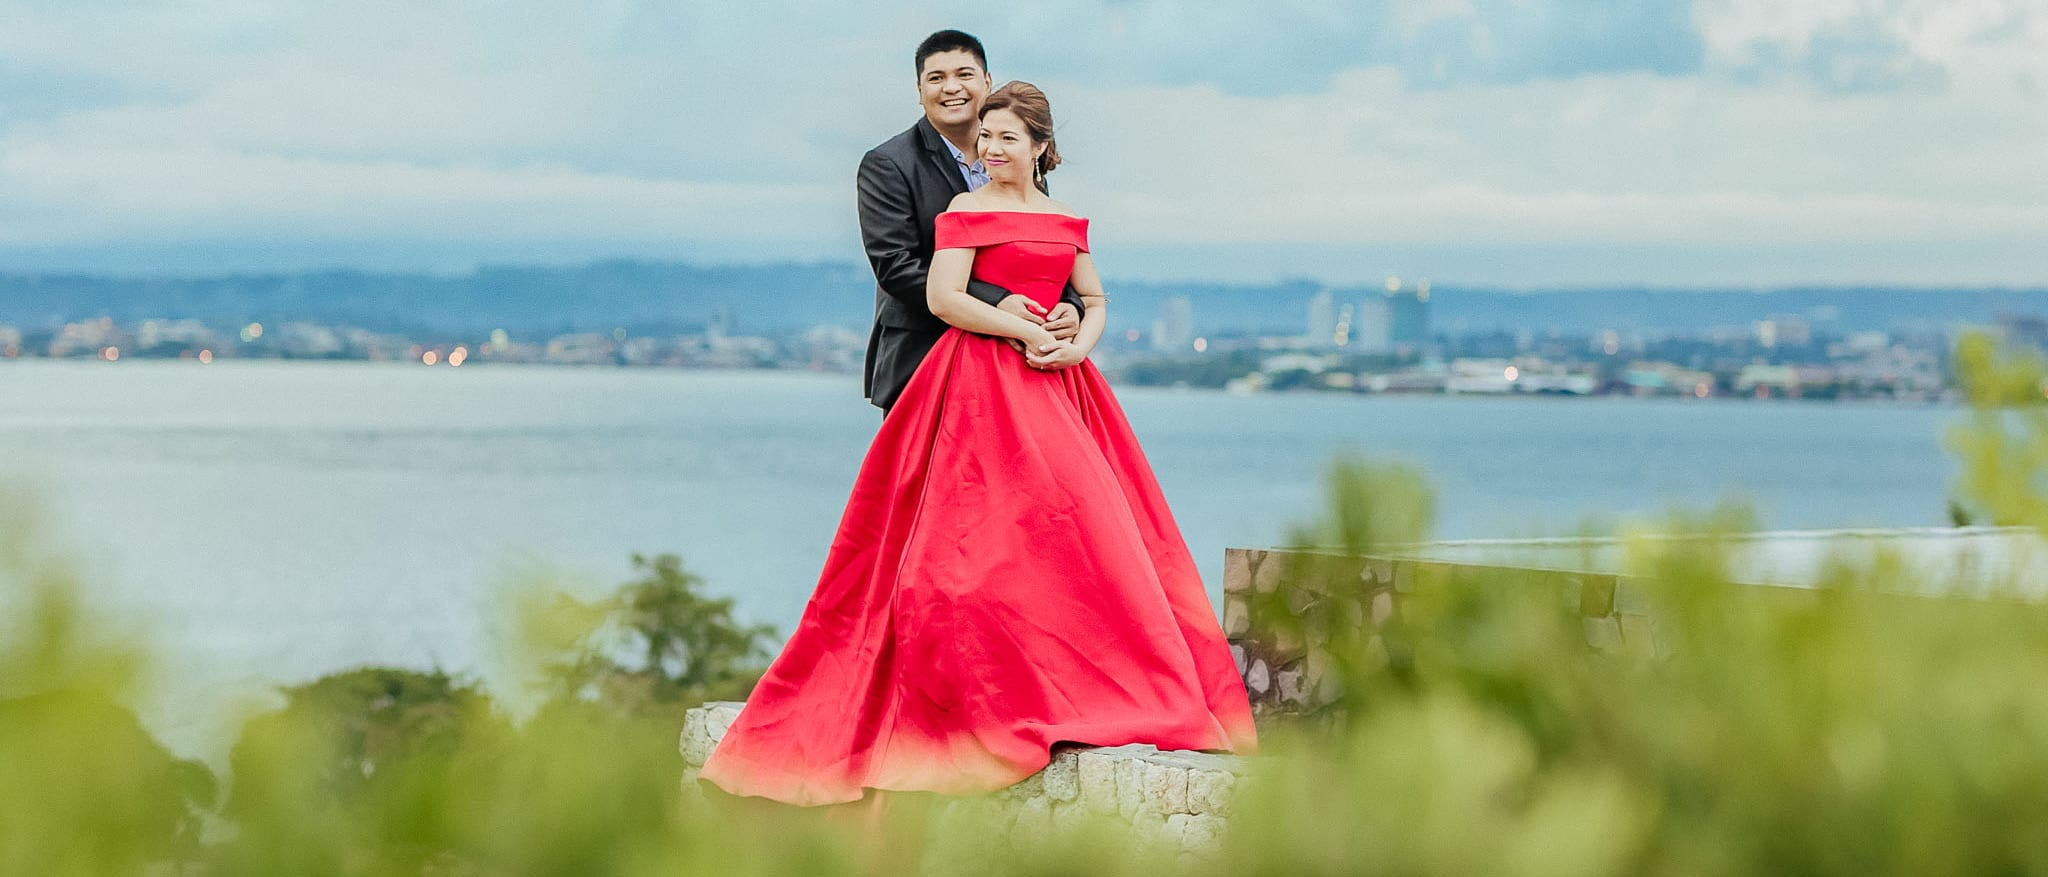 Cebu Based Wedding Photographer